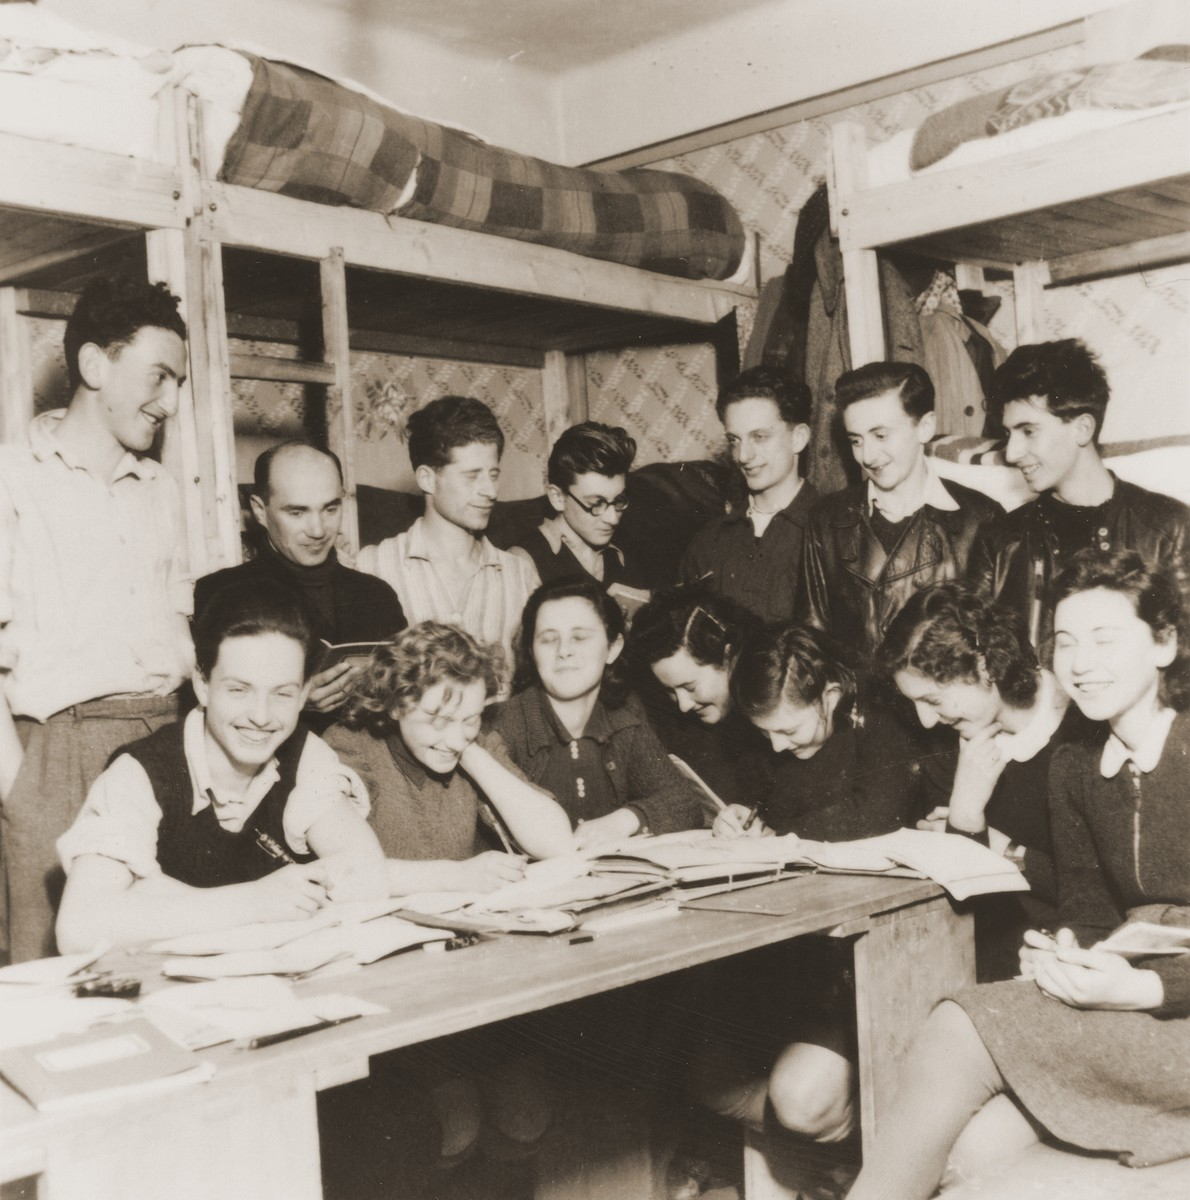 Members of the Hashomer Hatzair from the Kladovo transport are gathered in a room in the Sabac refugee camp.  Erich Nachhaeuser is pictured standing third from the left.